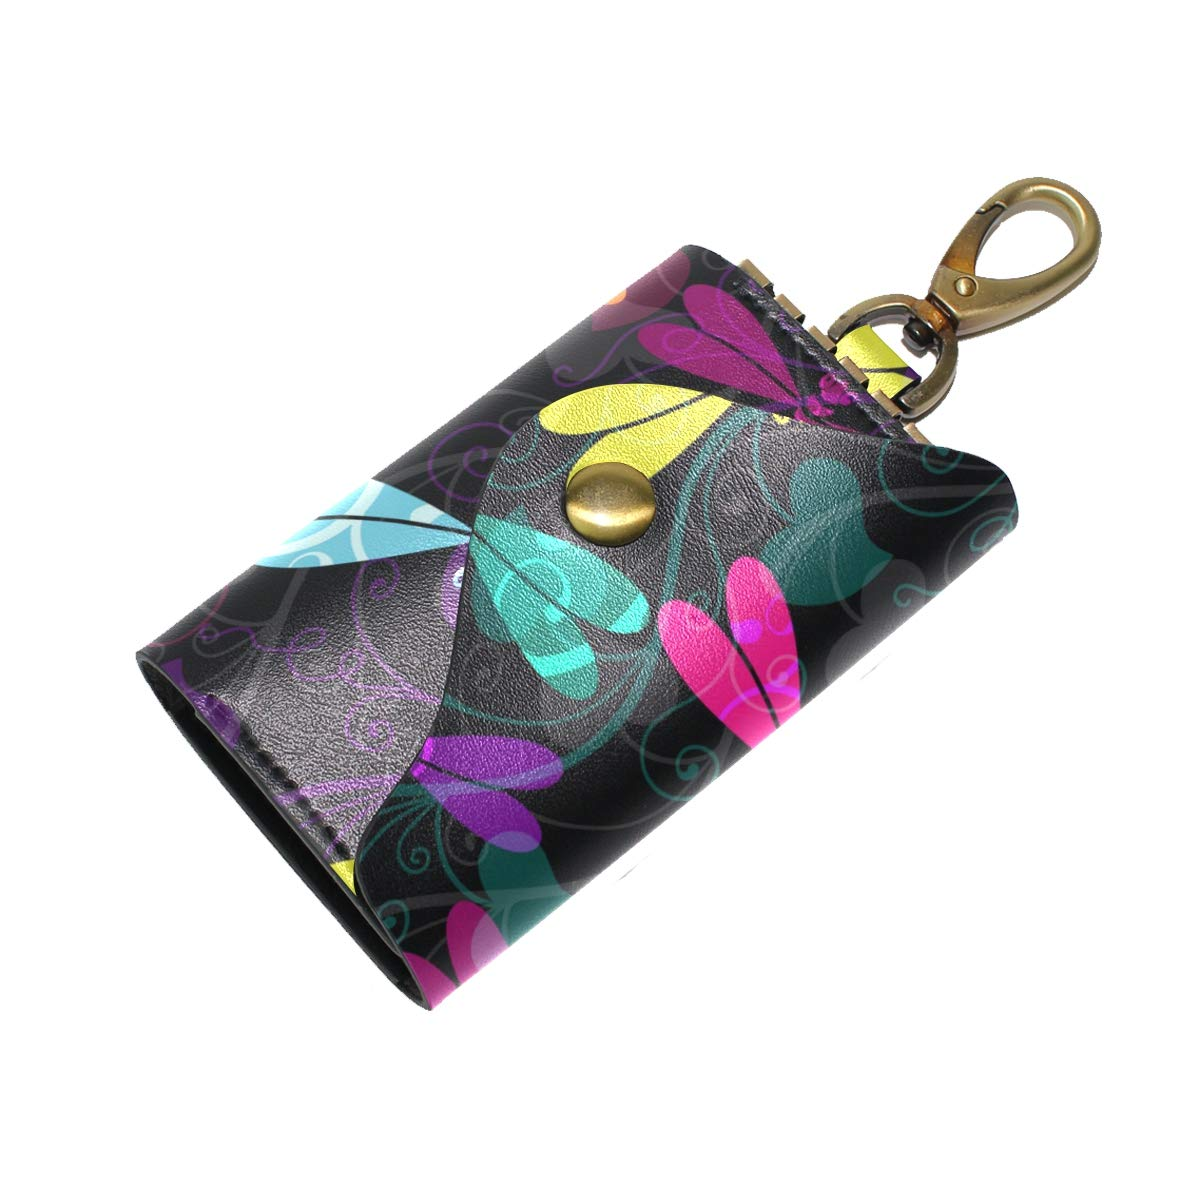 KEAKIA Dark Colorful Dragonflies Pattern Leather Key Case Wallets Tri-fold Key Holder Keychains with 6 Hooks 2 Slot Snap Closure for Men Women